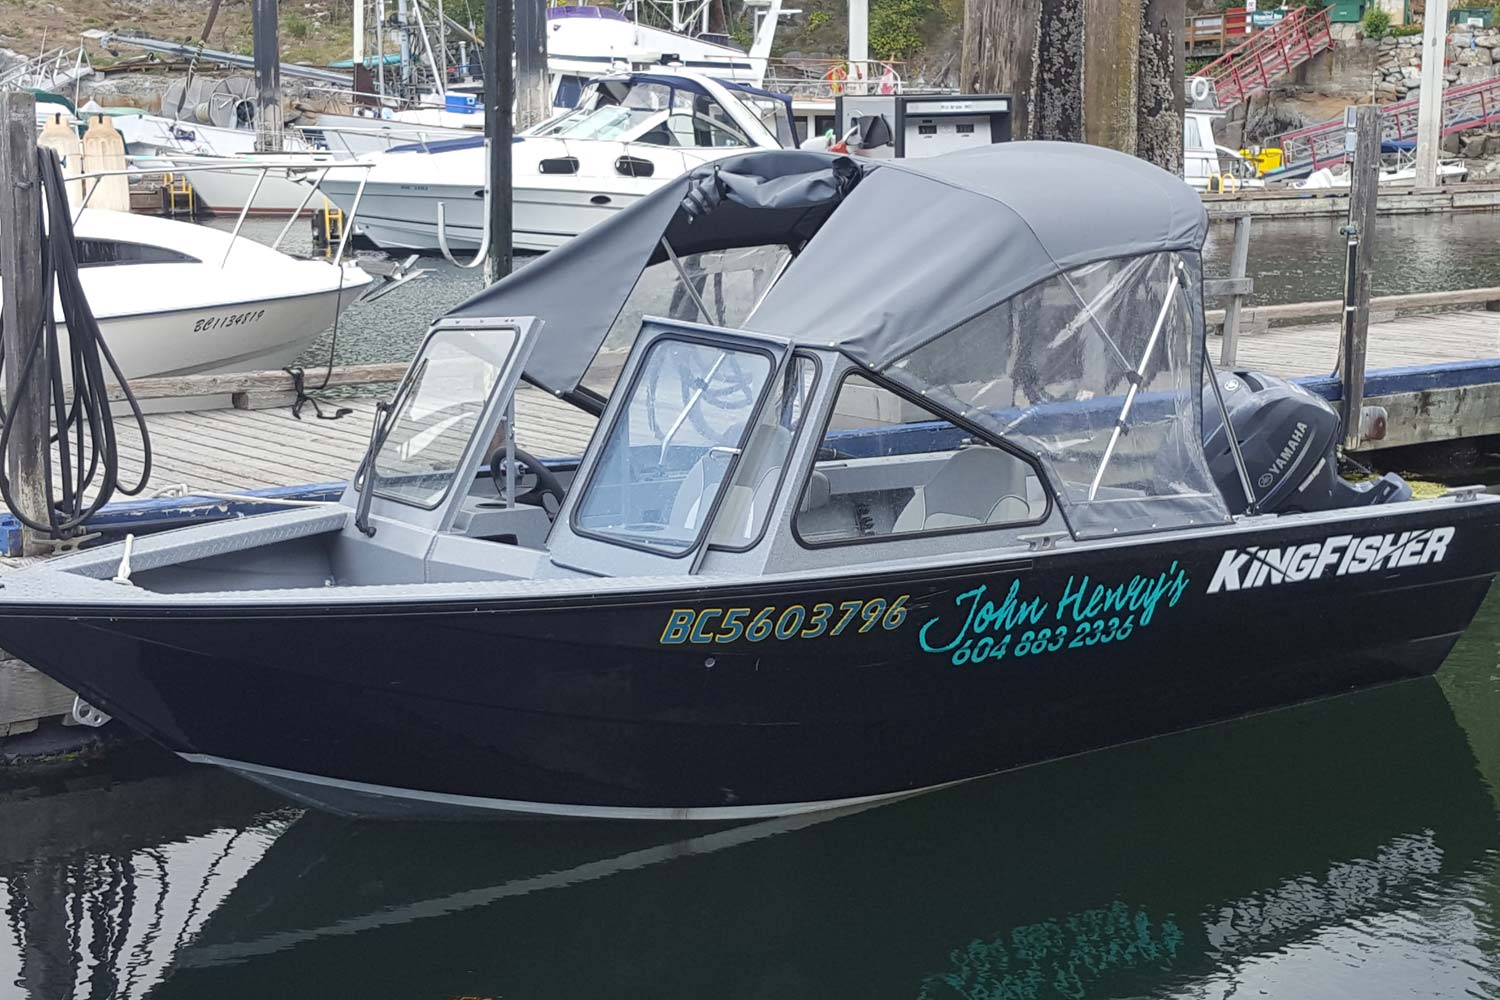 A 16-foot Kingfisher Falcon powerboat, equipped with a 75HP engine available at John Henry's Pender Harbour Boat Rentals.